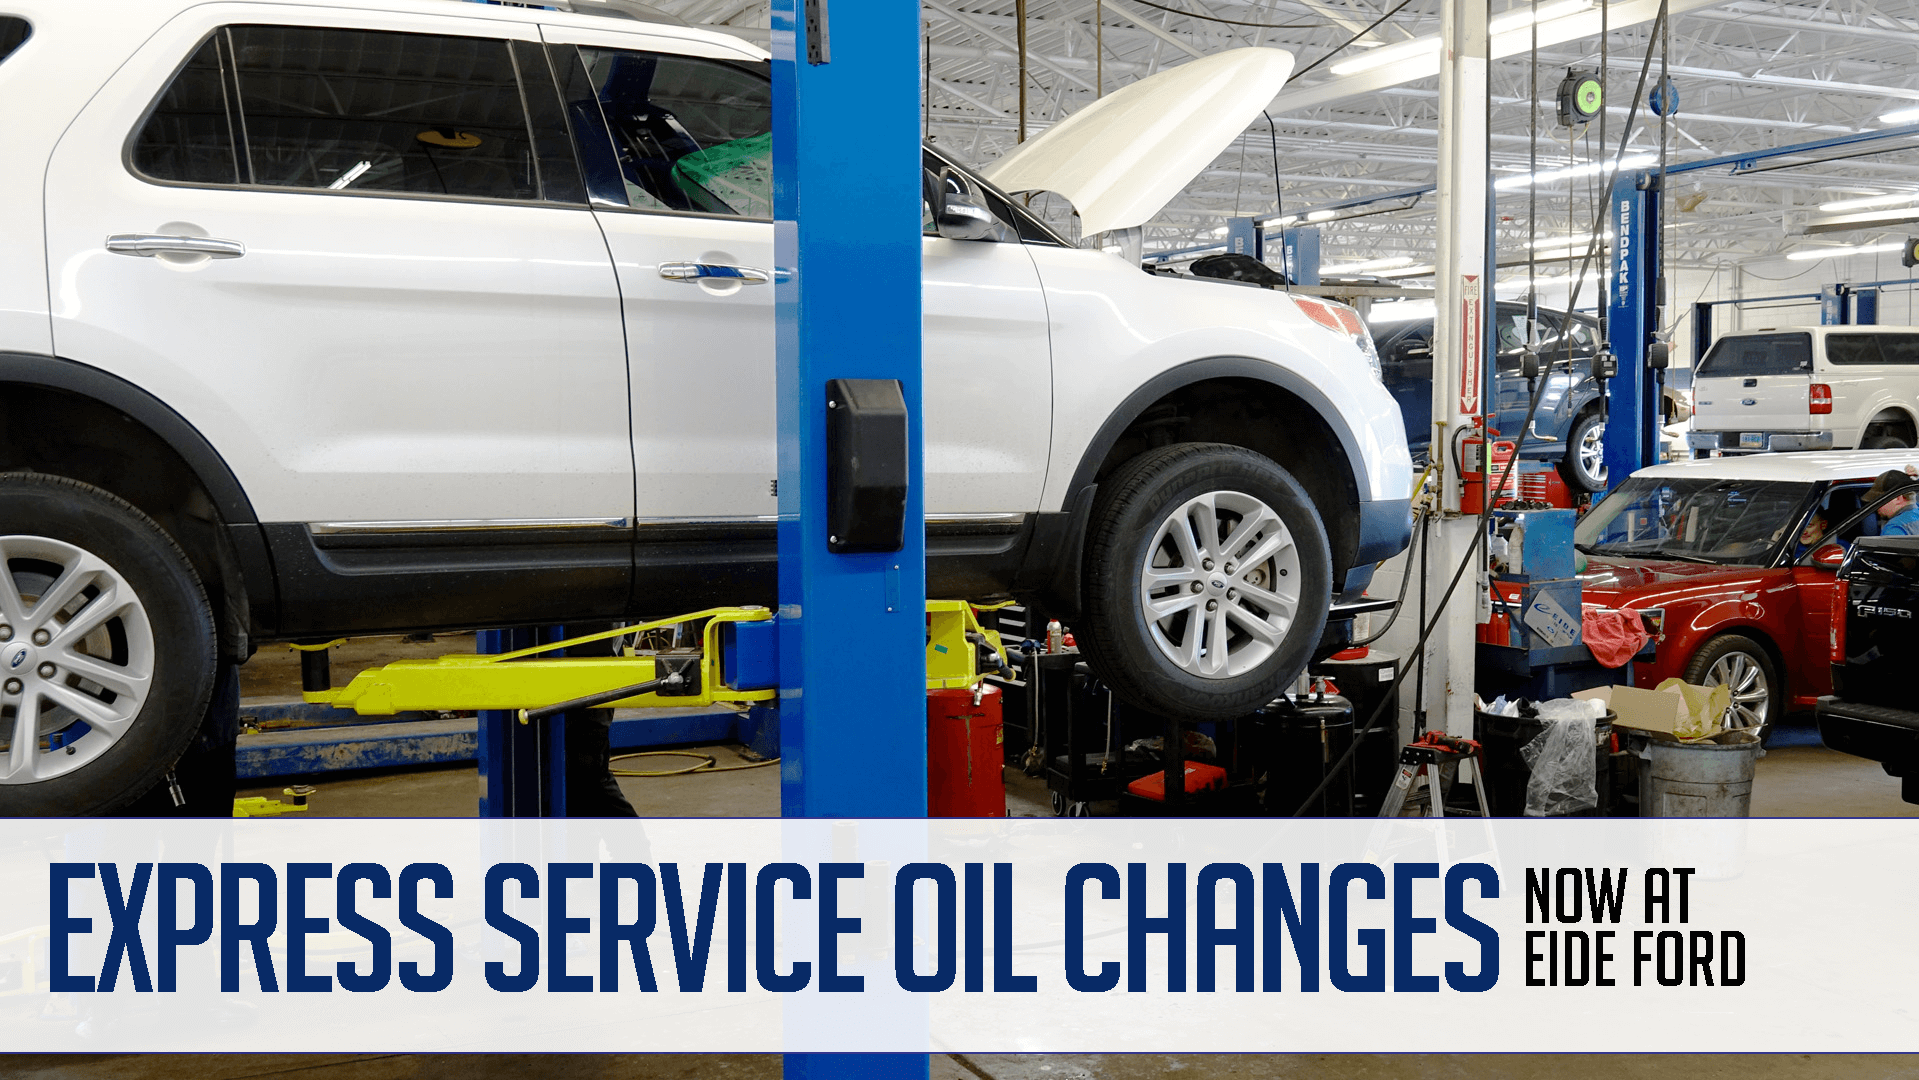 Oil changes at Eide Ford